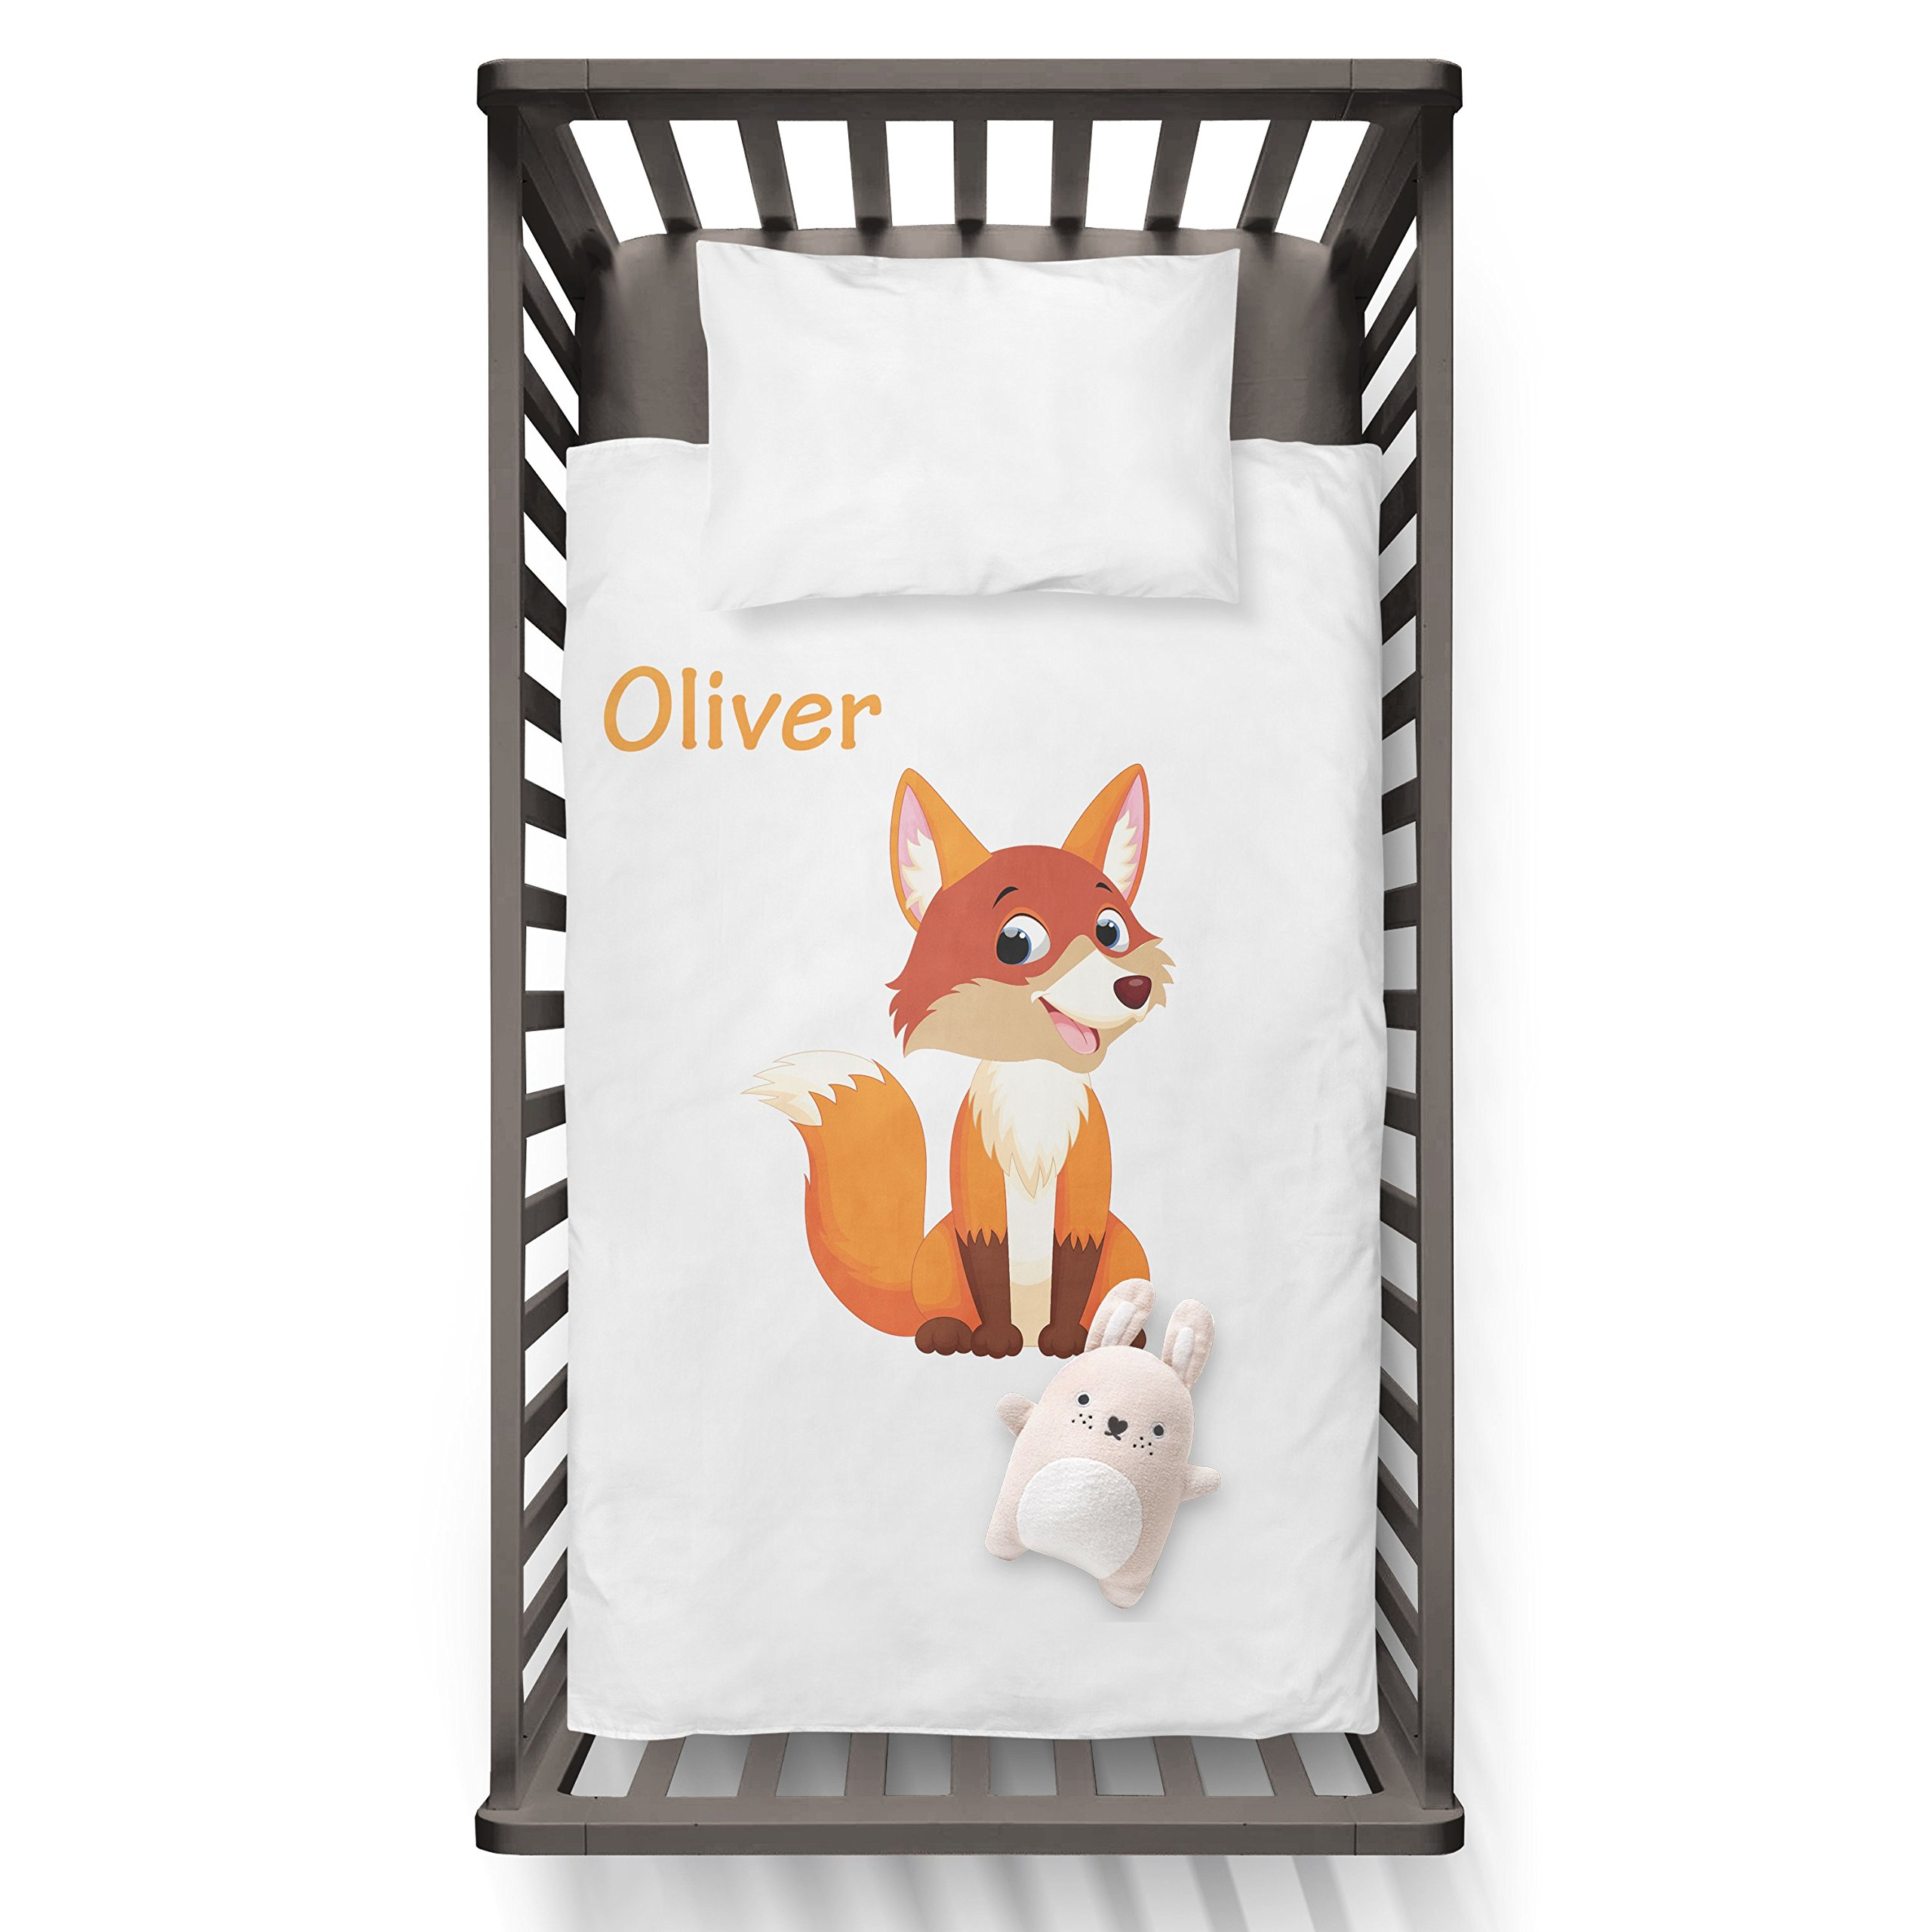 Fox With Baby Name (any name) Funny Humor Hip Baby Duvet /Pillow set,Toddler Duvet,Oeko-Tex,Personalized duvet and pillow,Oraganic,gift